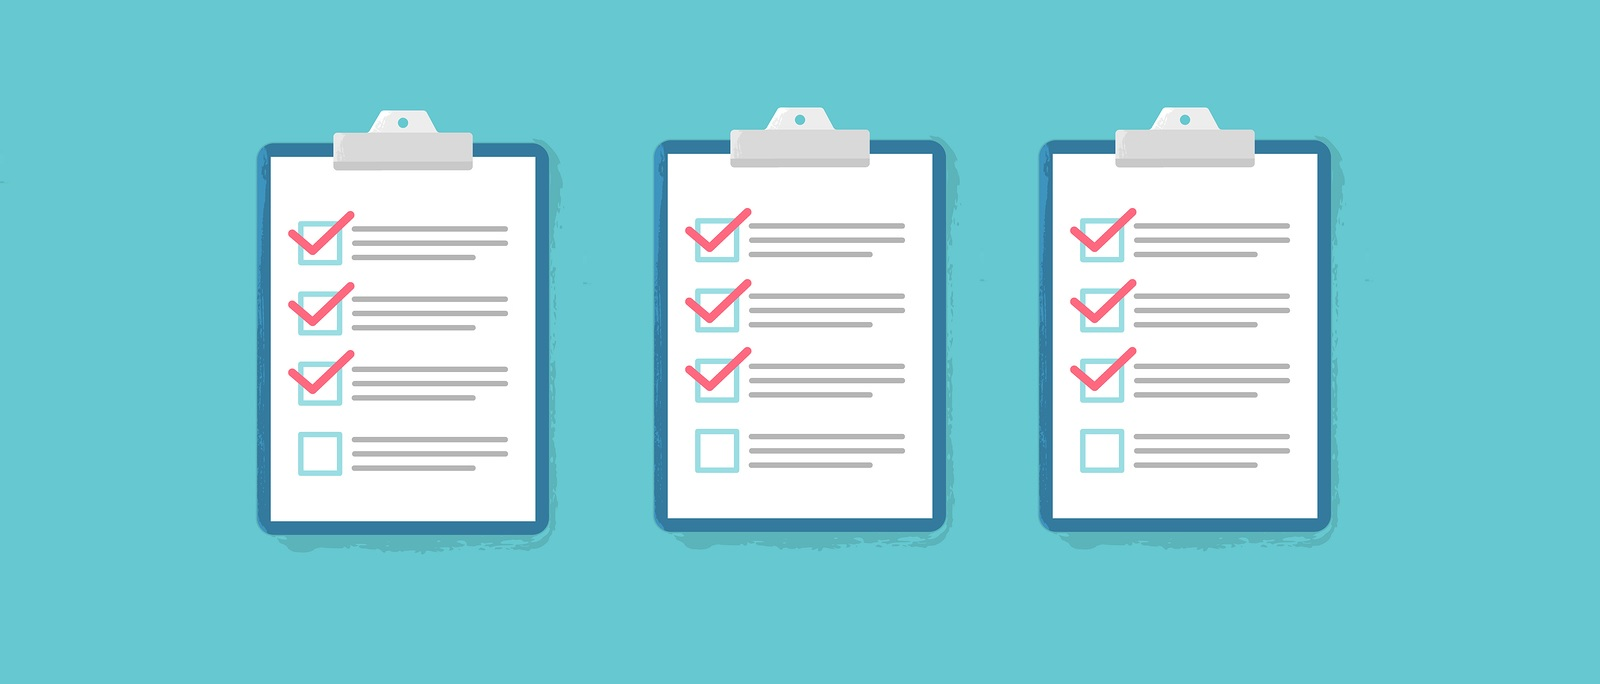 HIPAA security rule checklist